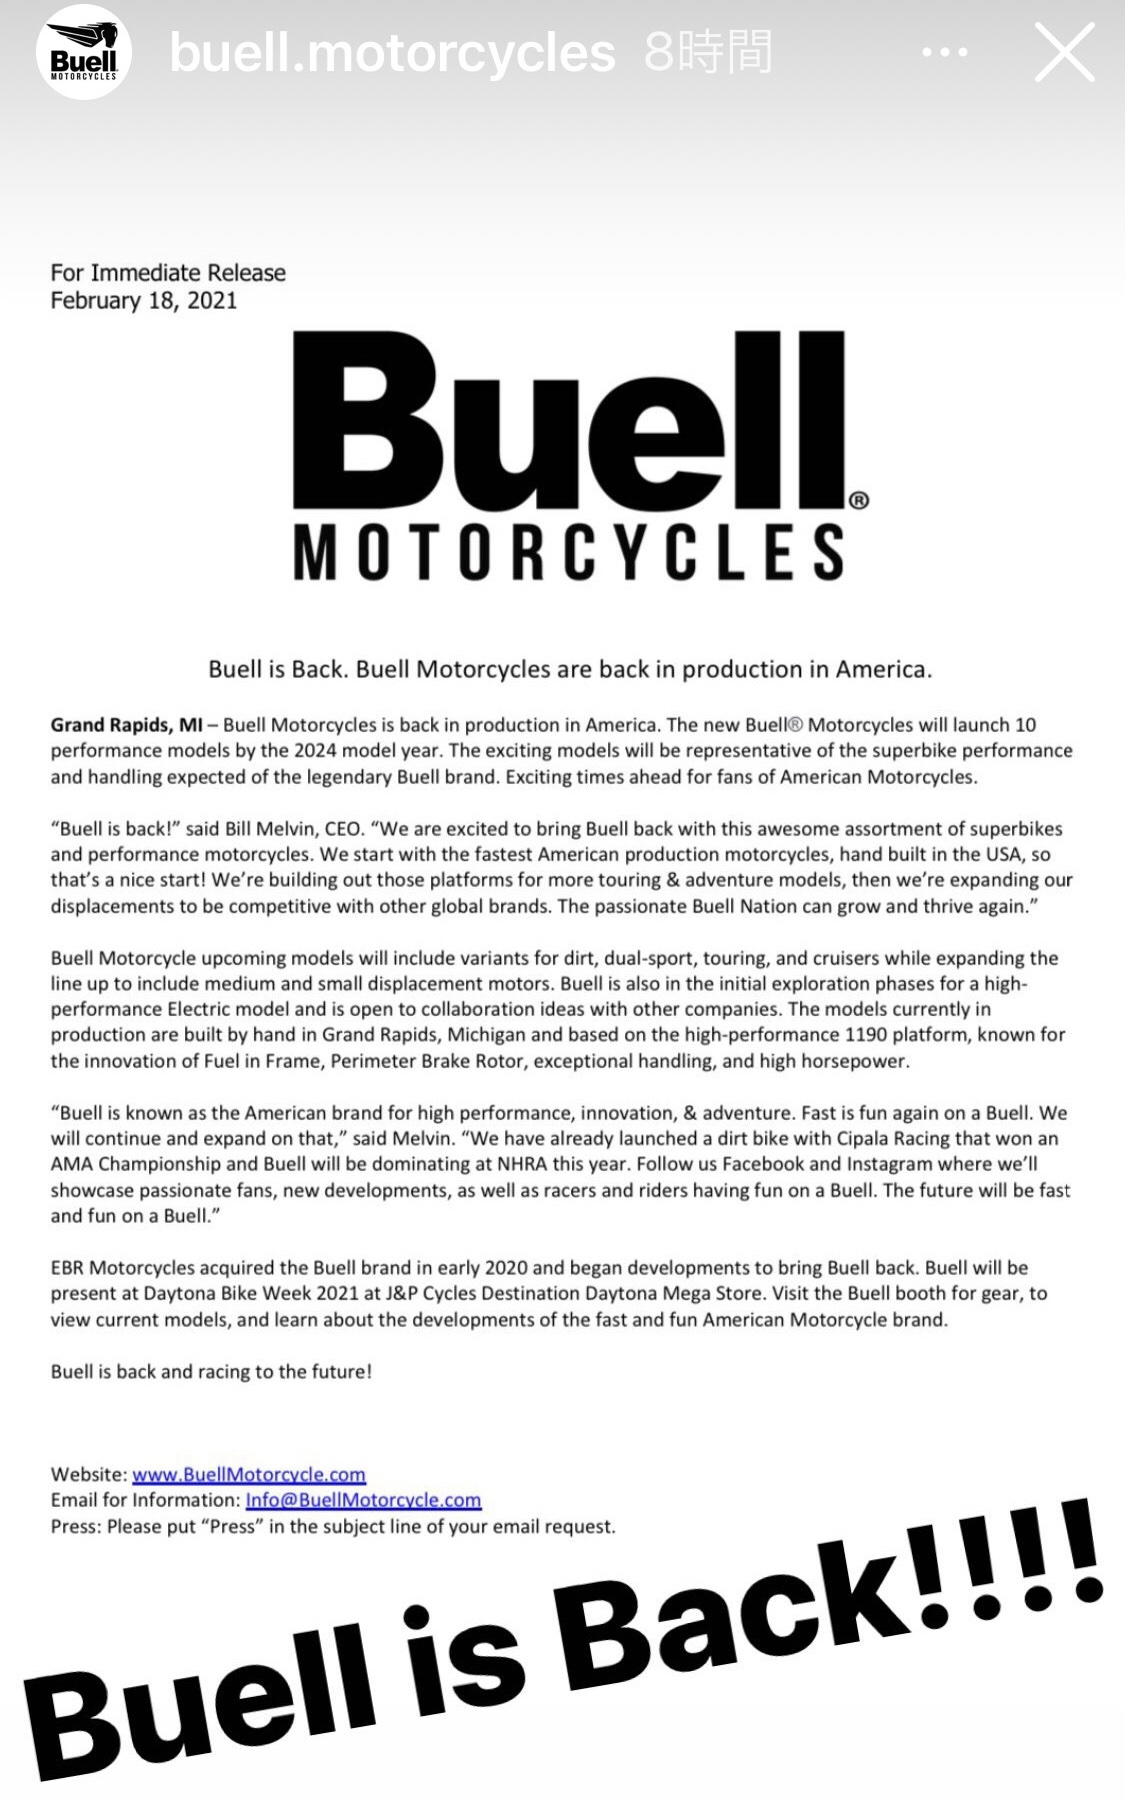 Buell is Back!!!!